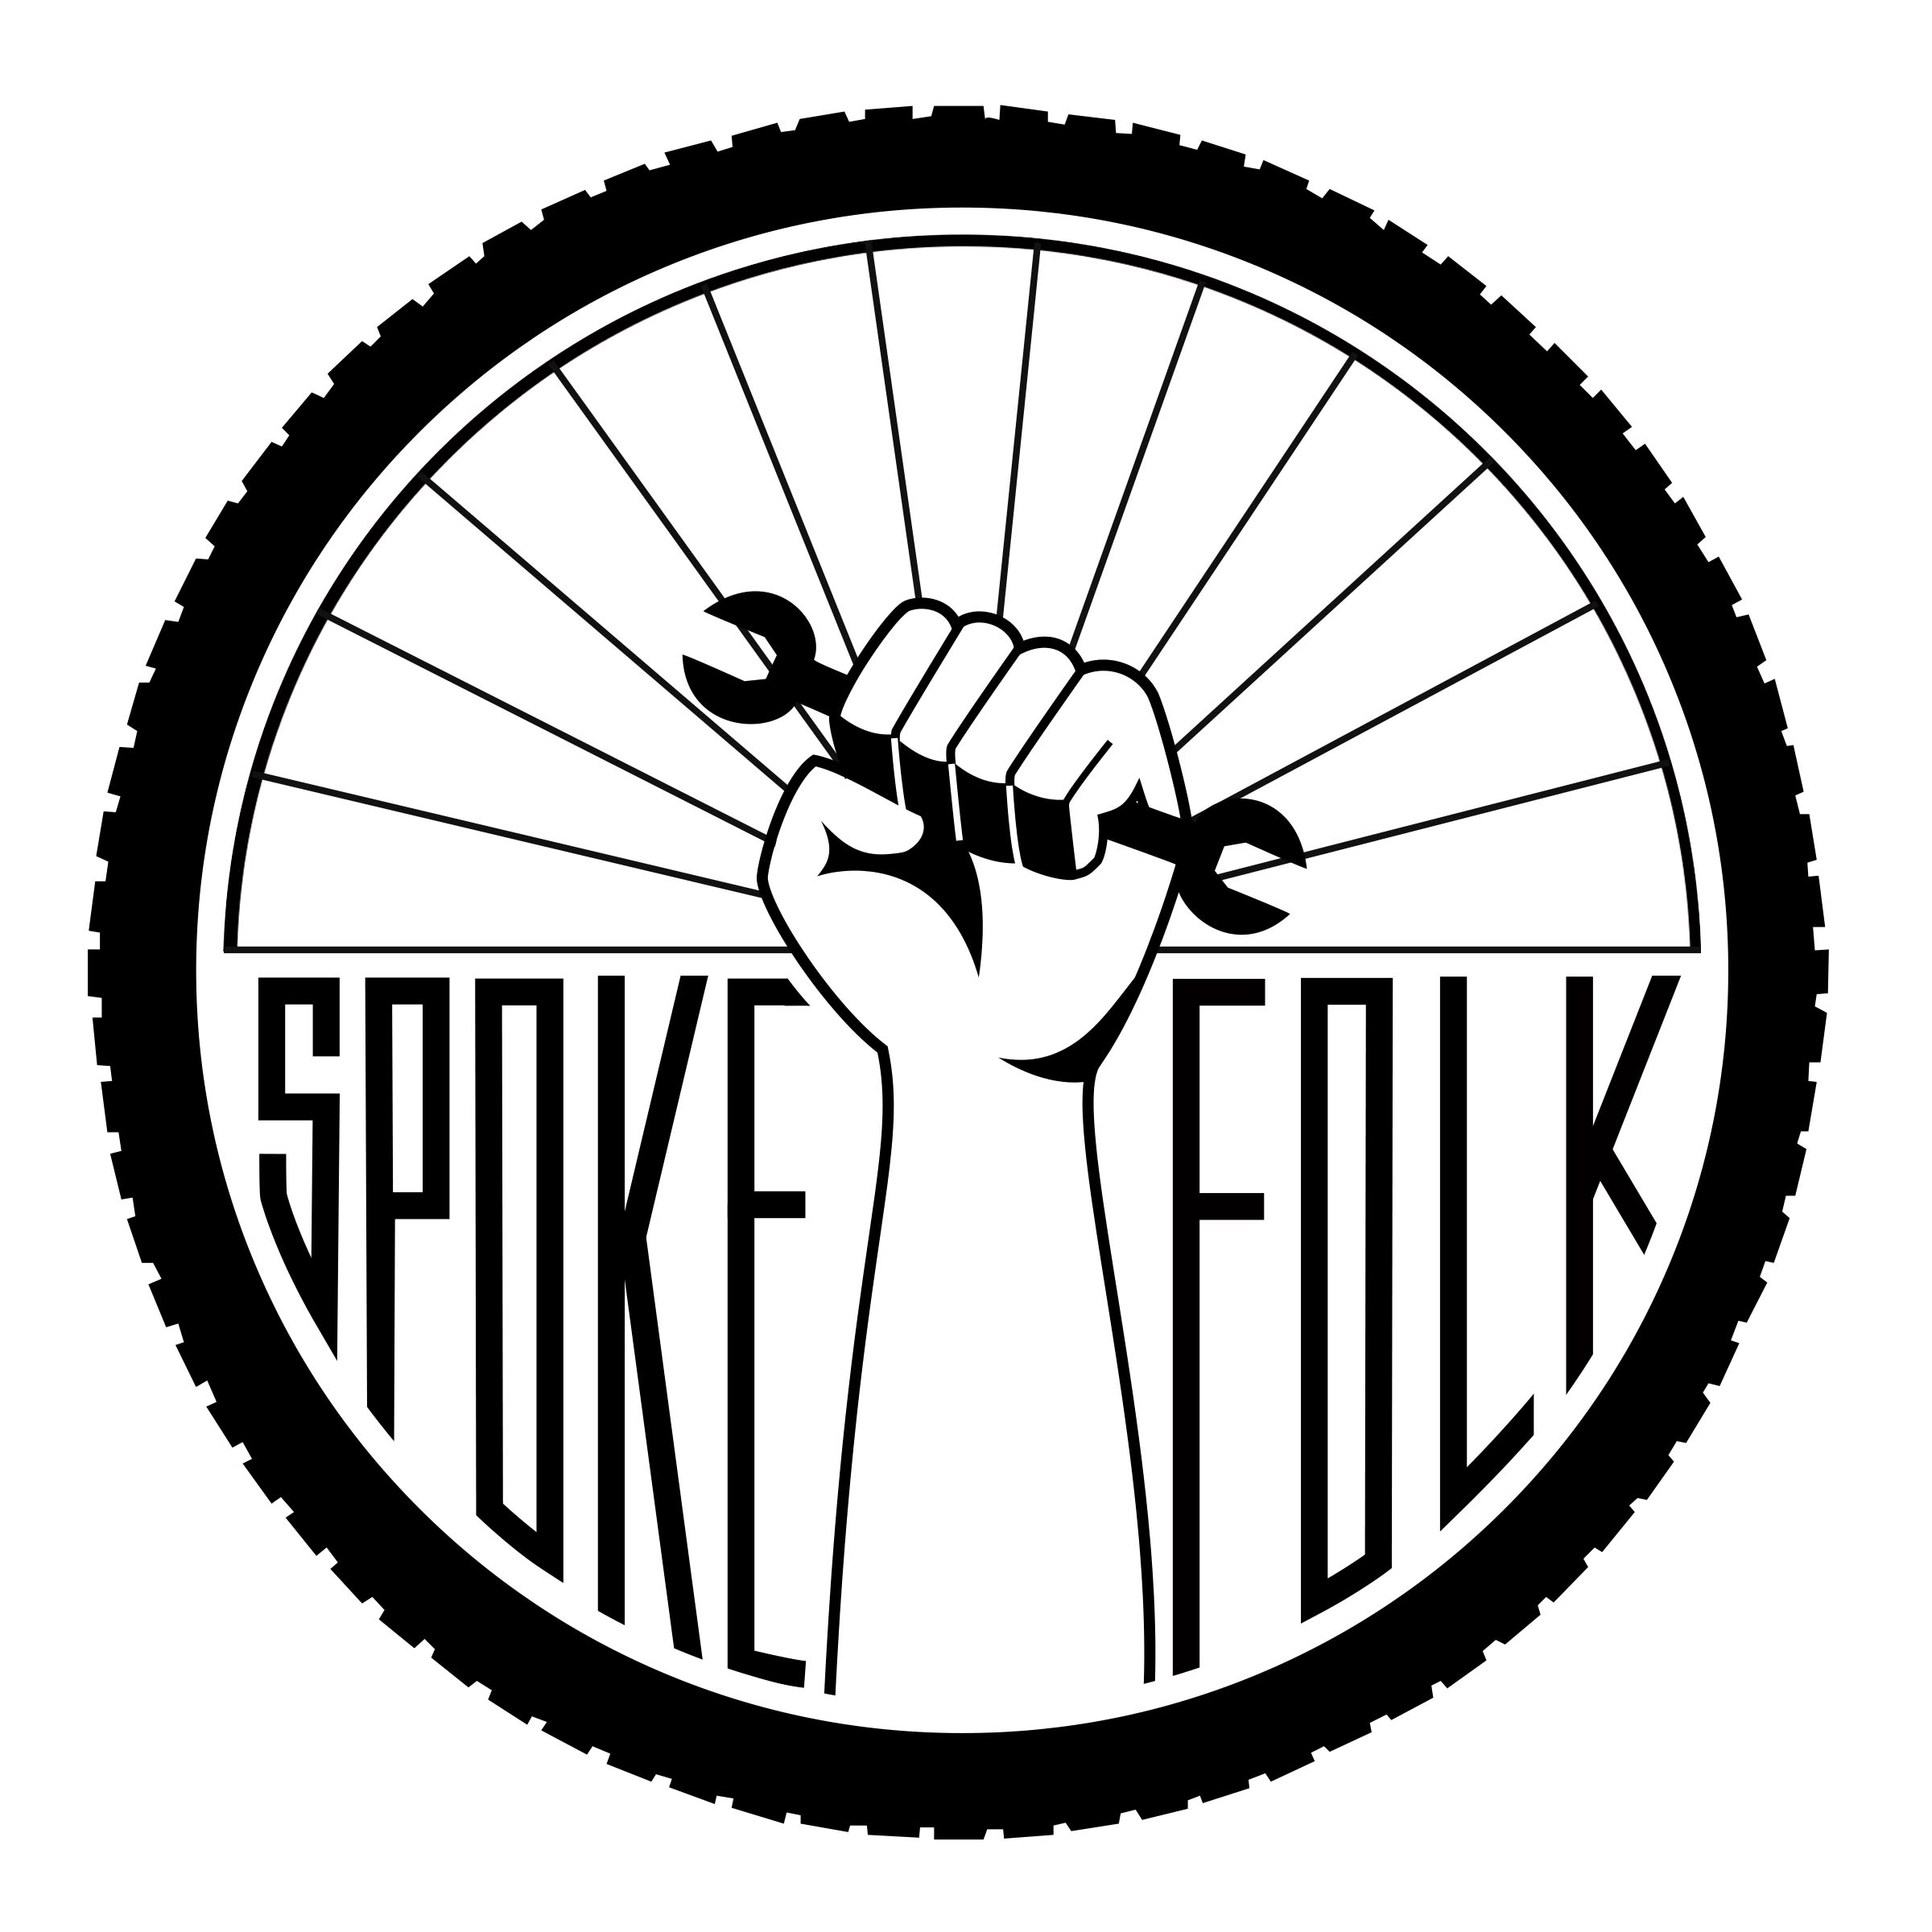 Spoke Folk Bike Collective